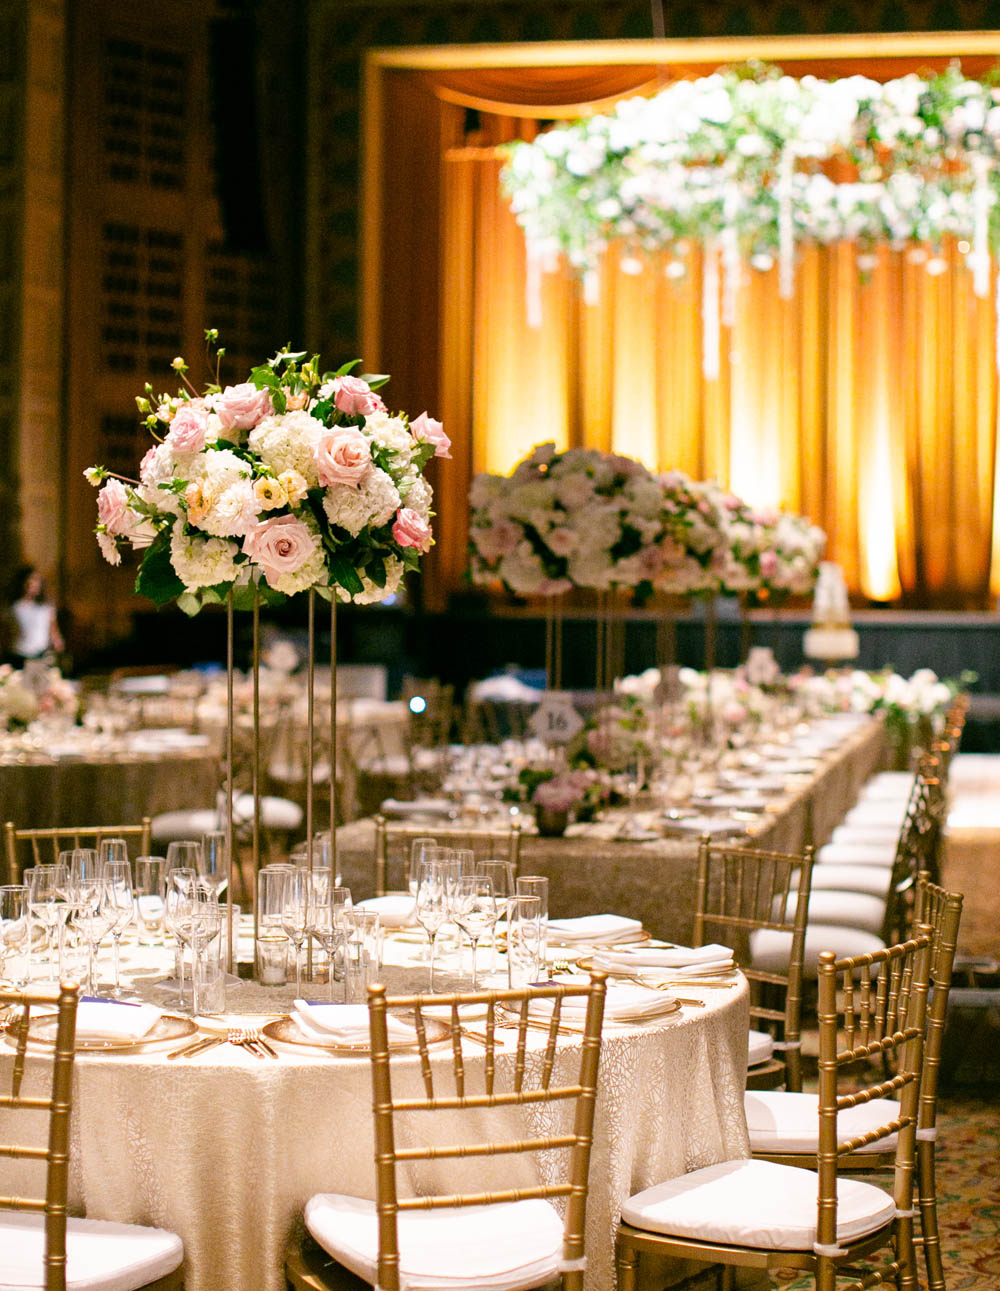 Portland Art Museum wedding dinner flowers